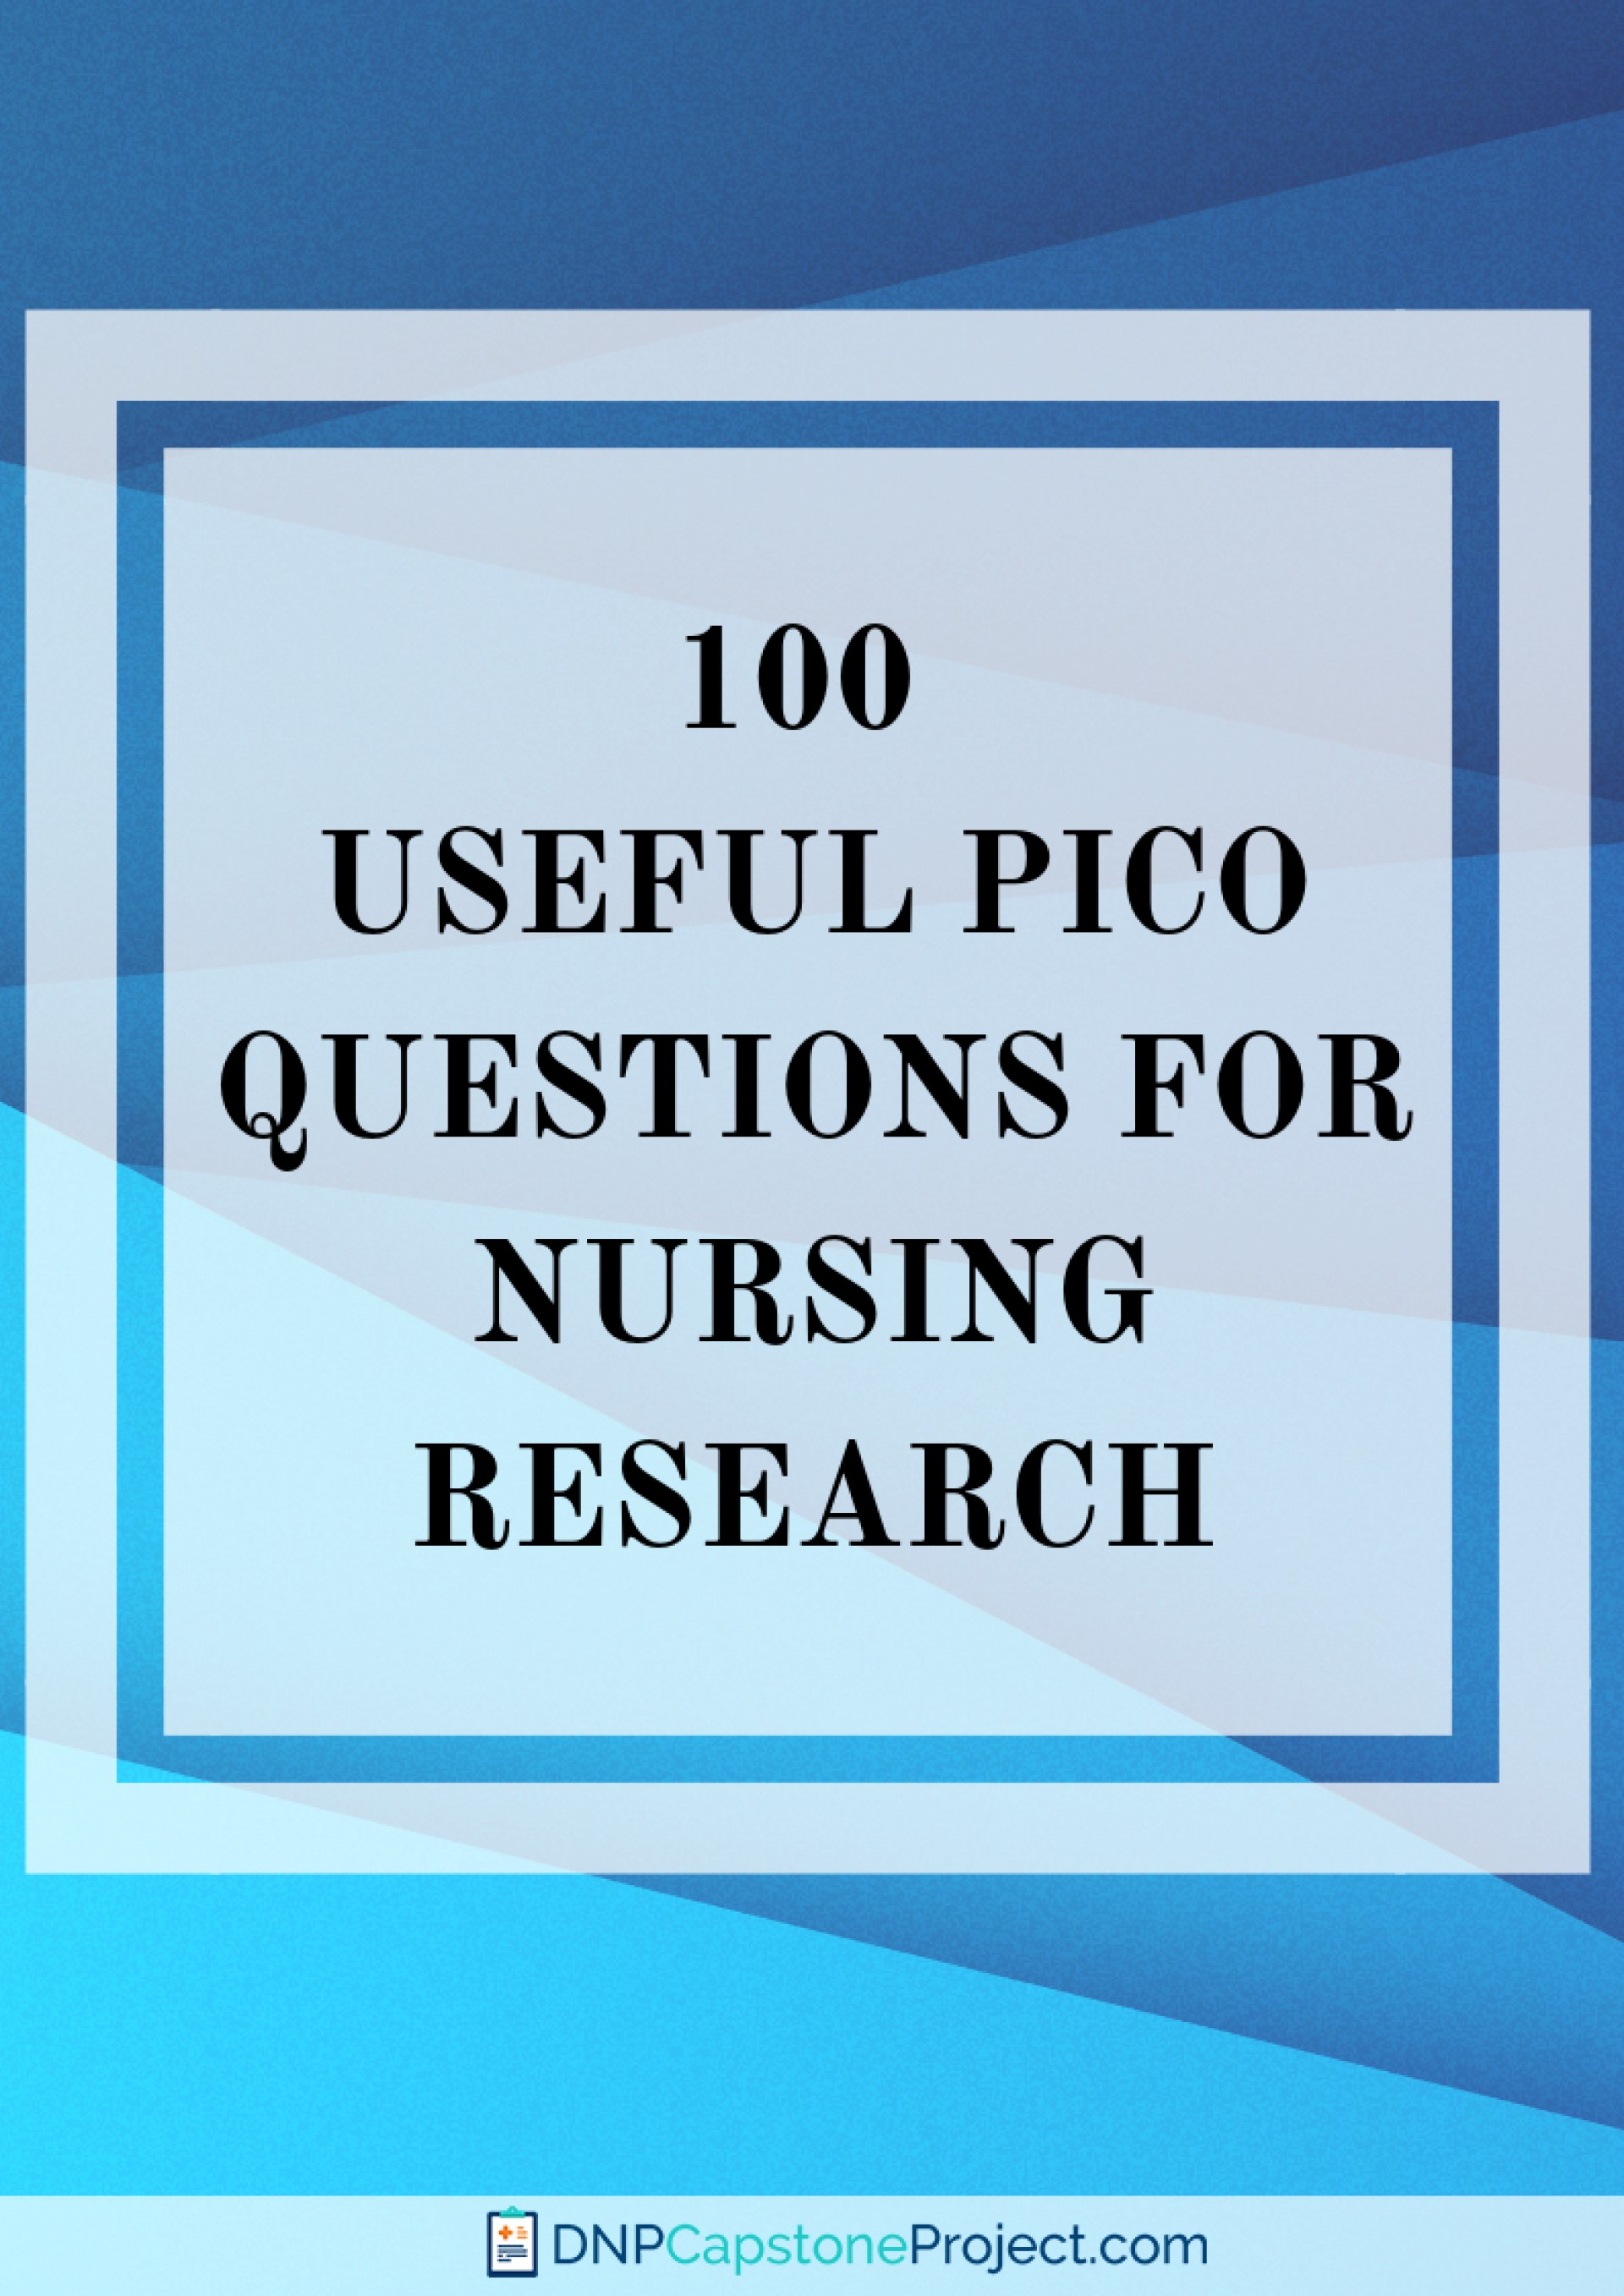 Dy research topics in nursing profession - Writing Custom Research Papers Quickly and Troublefree